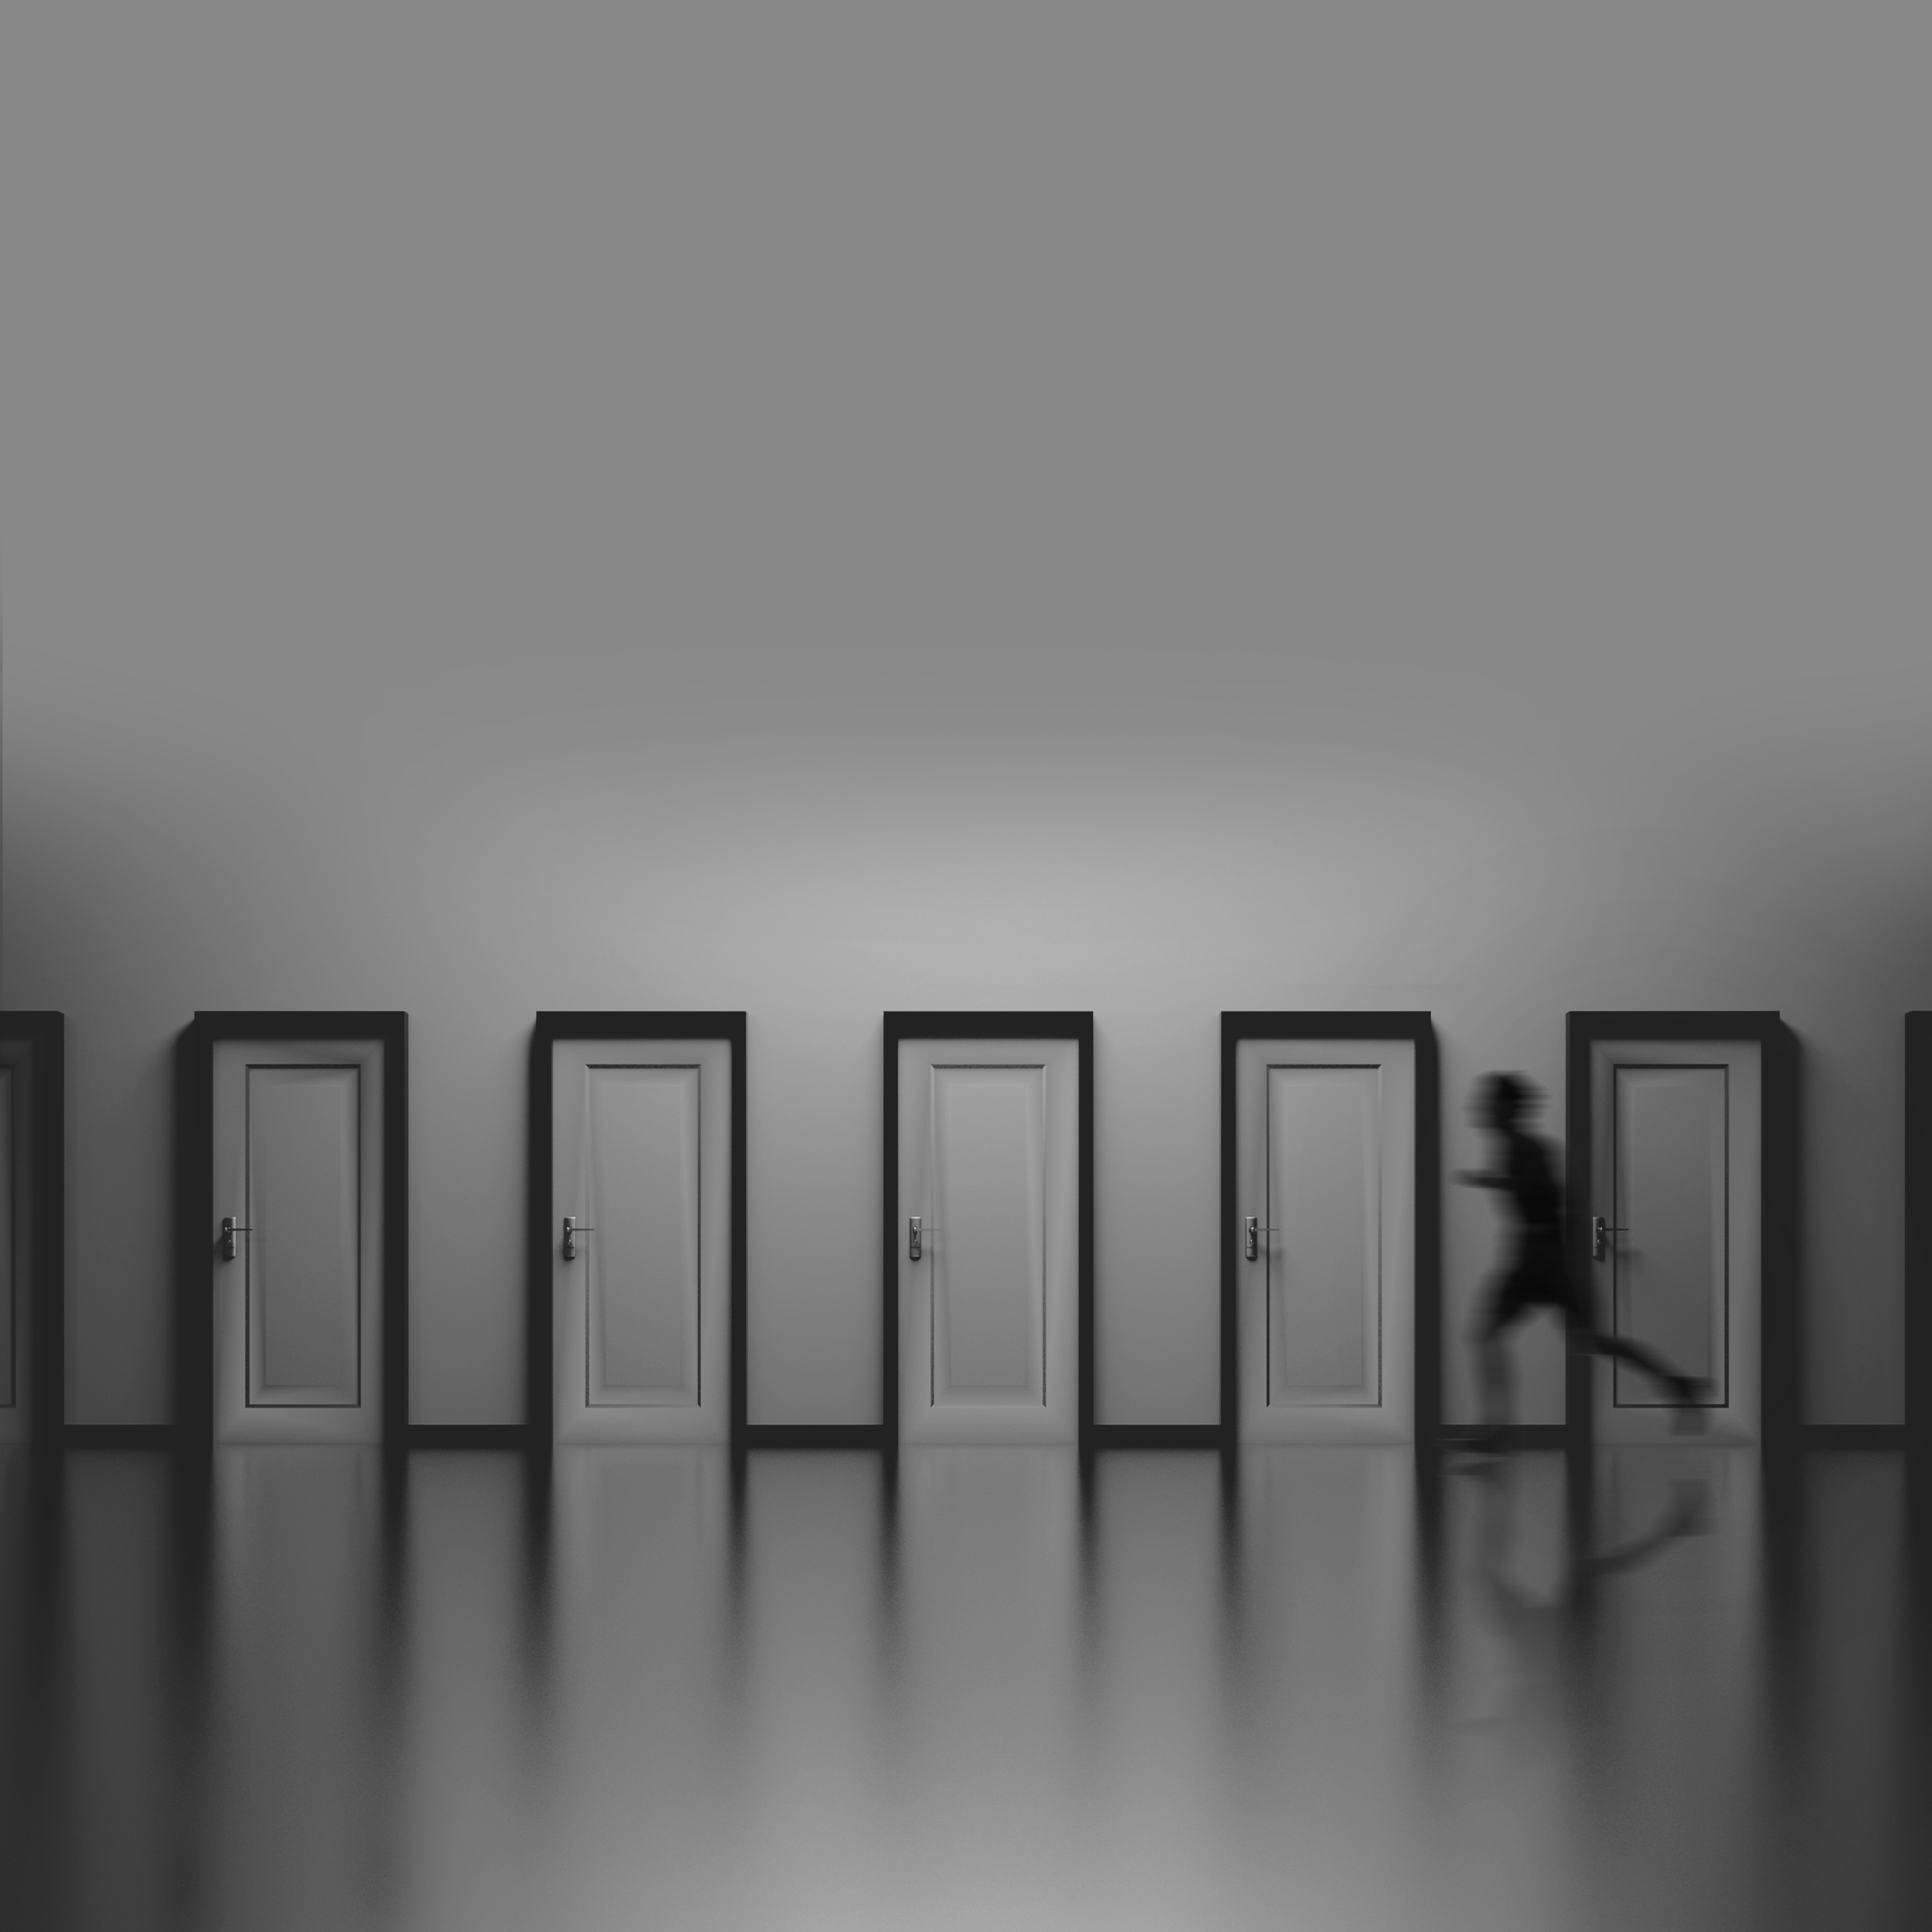 136264 download wallpaper Silhouette, Minimalism, Bw, Chb, Speed, Doors, Door, Run, Running screensavers and pictures for free